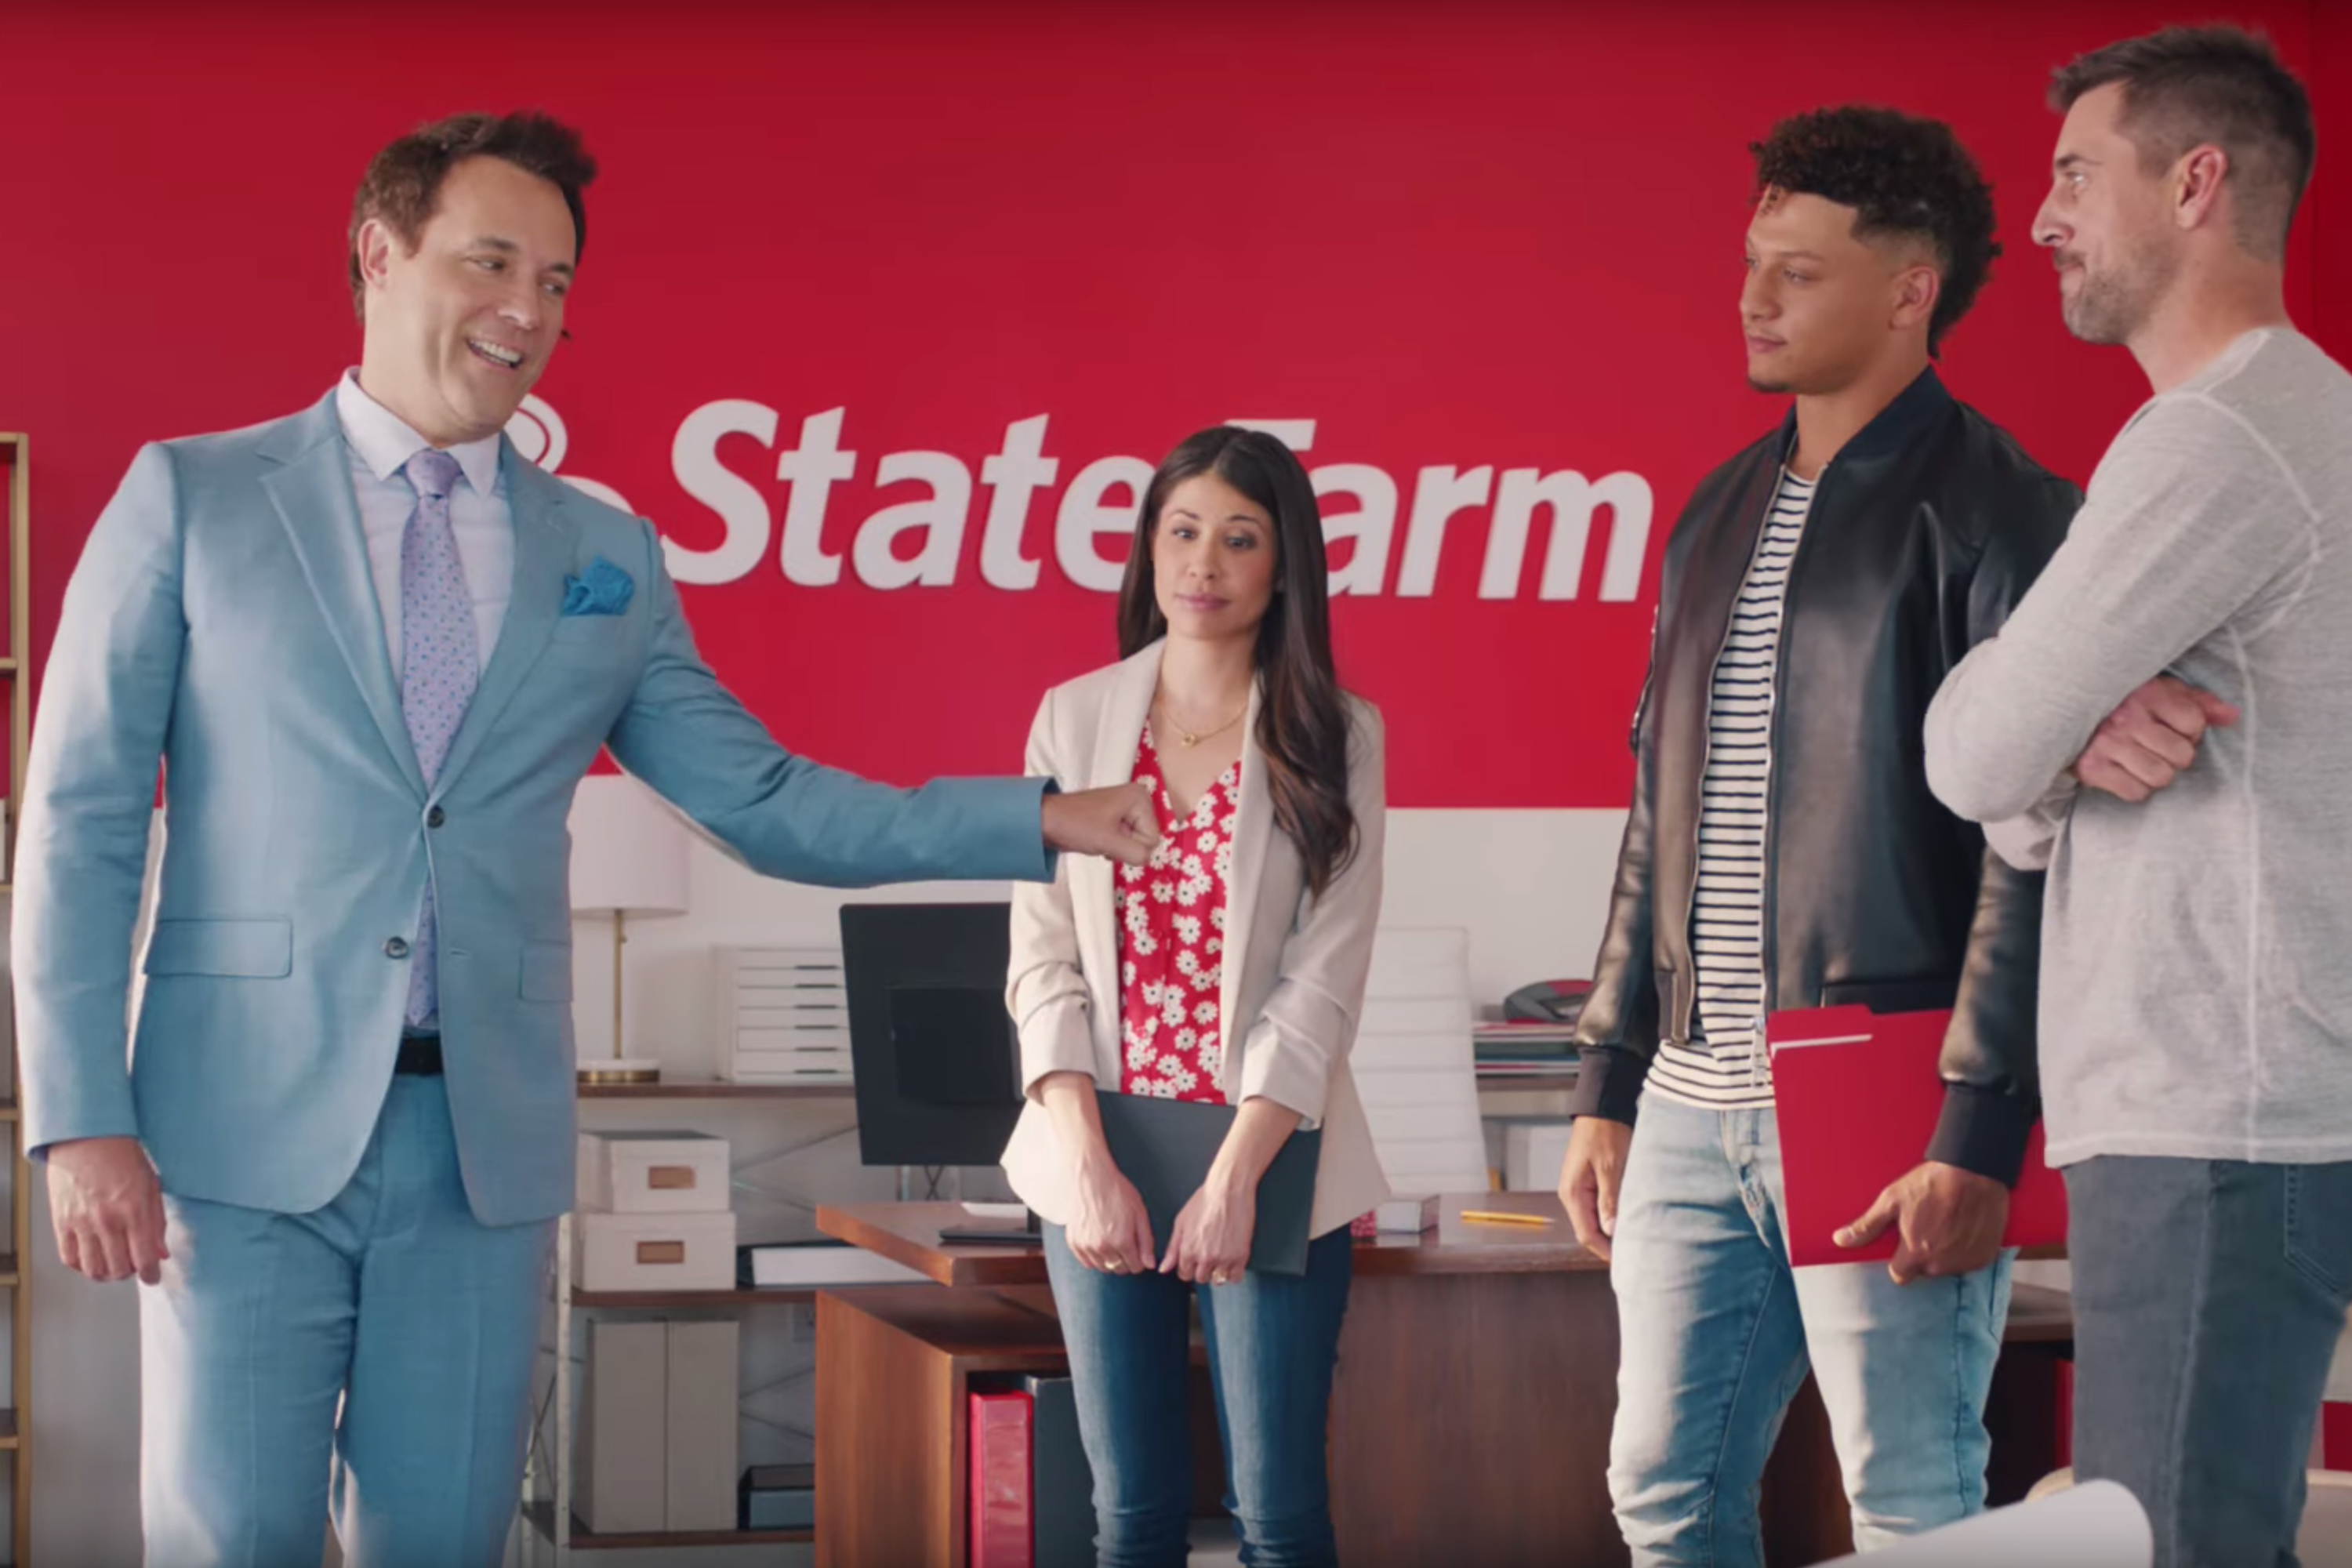 State Farm gives brand creative duties to the Marketing Arm, dealing blow to DDB